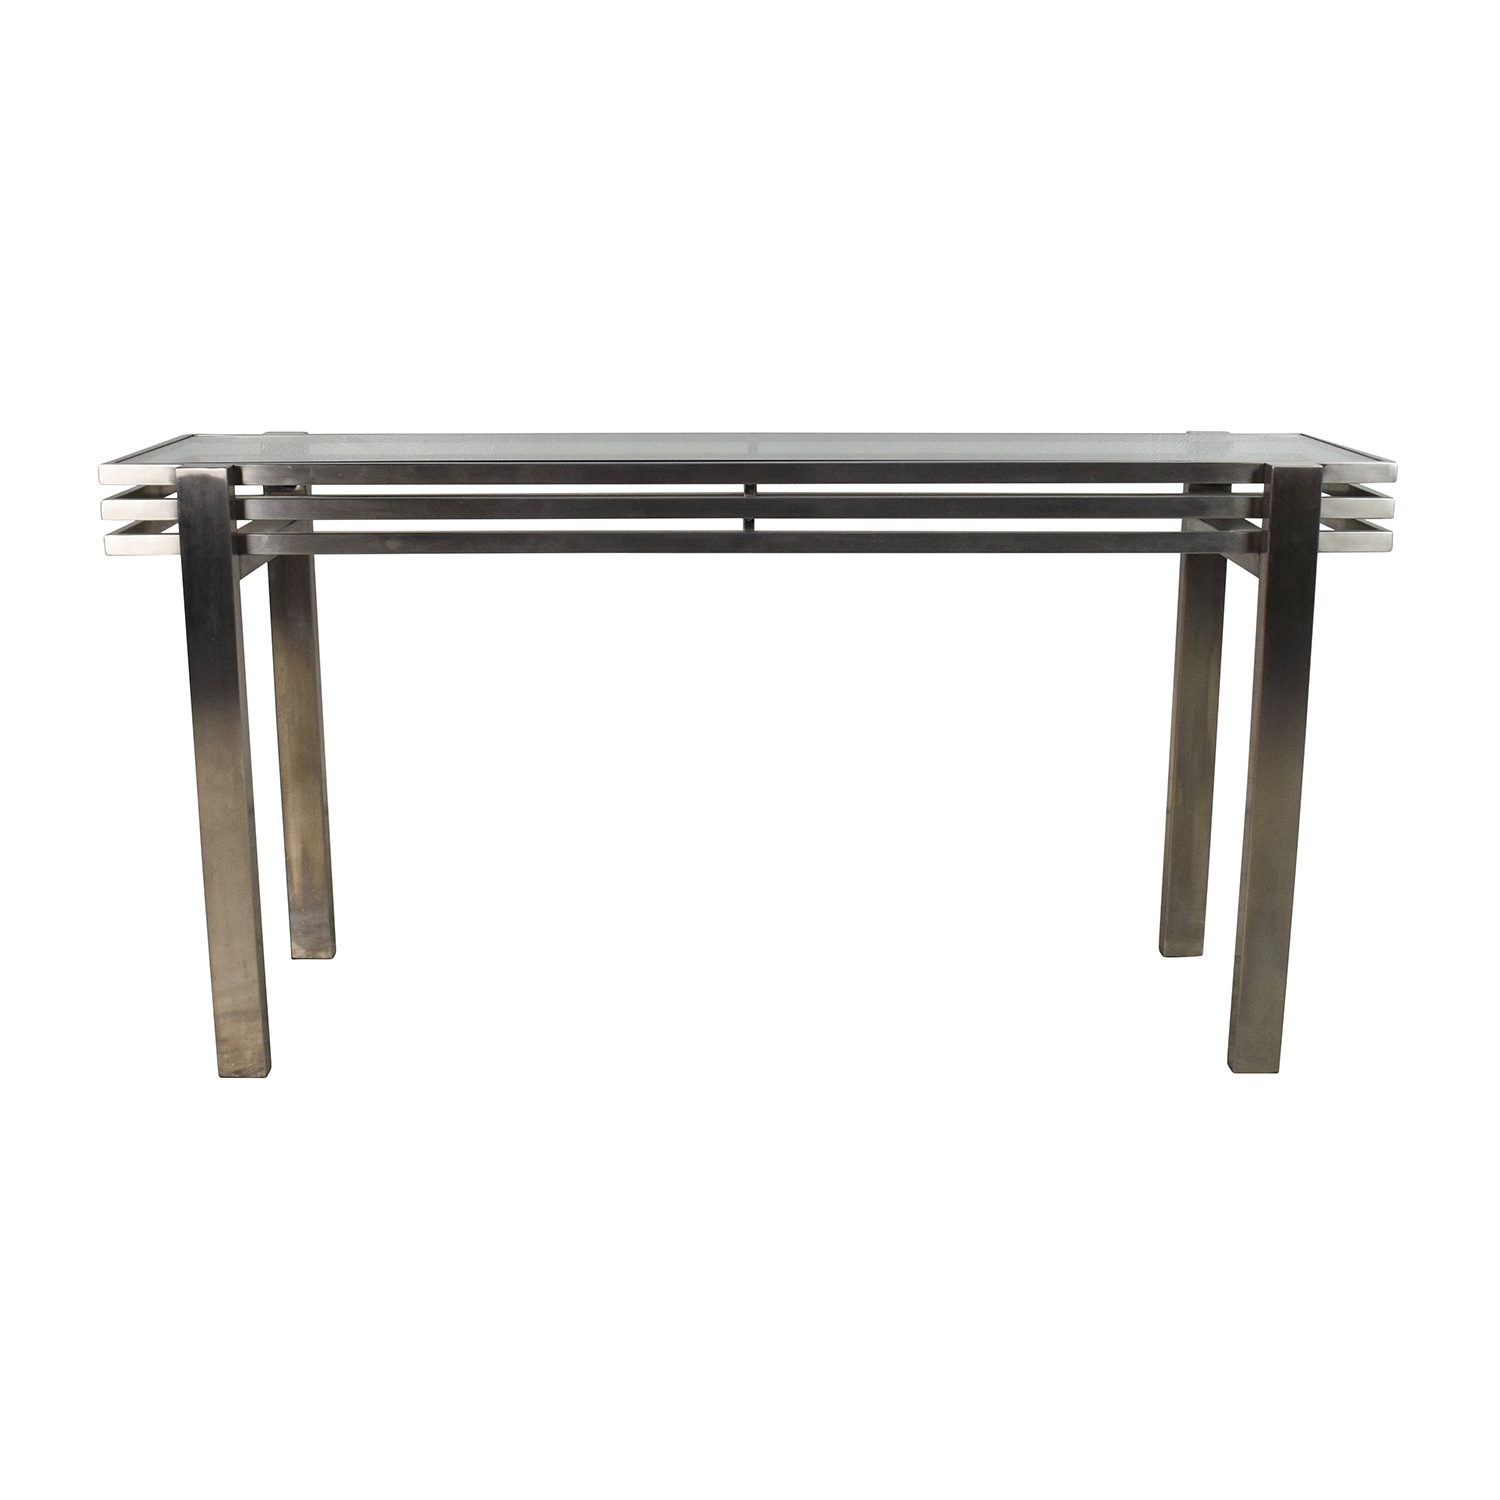 58% OFF Monarch Monarch Rustic Nesting Console Tables Tables